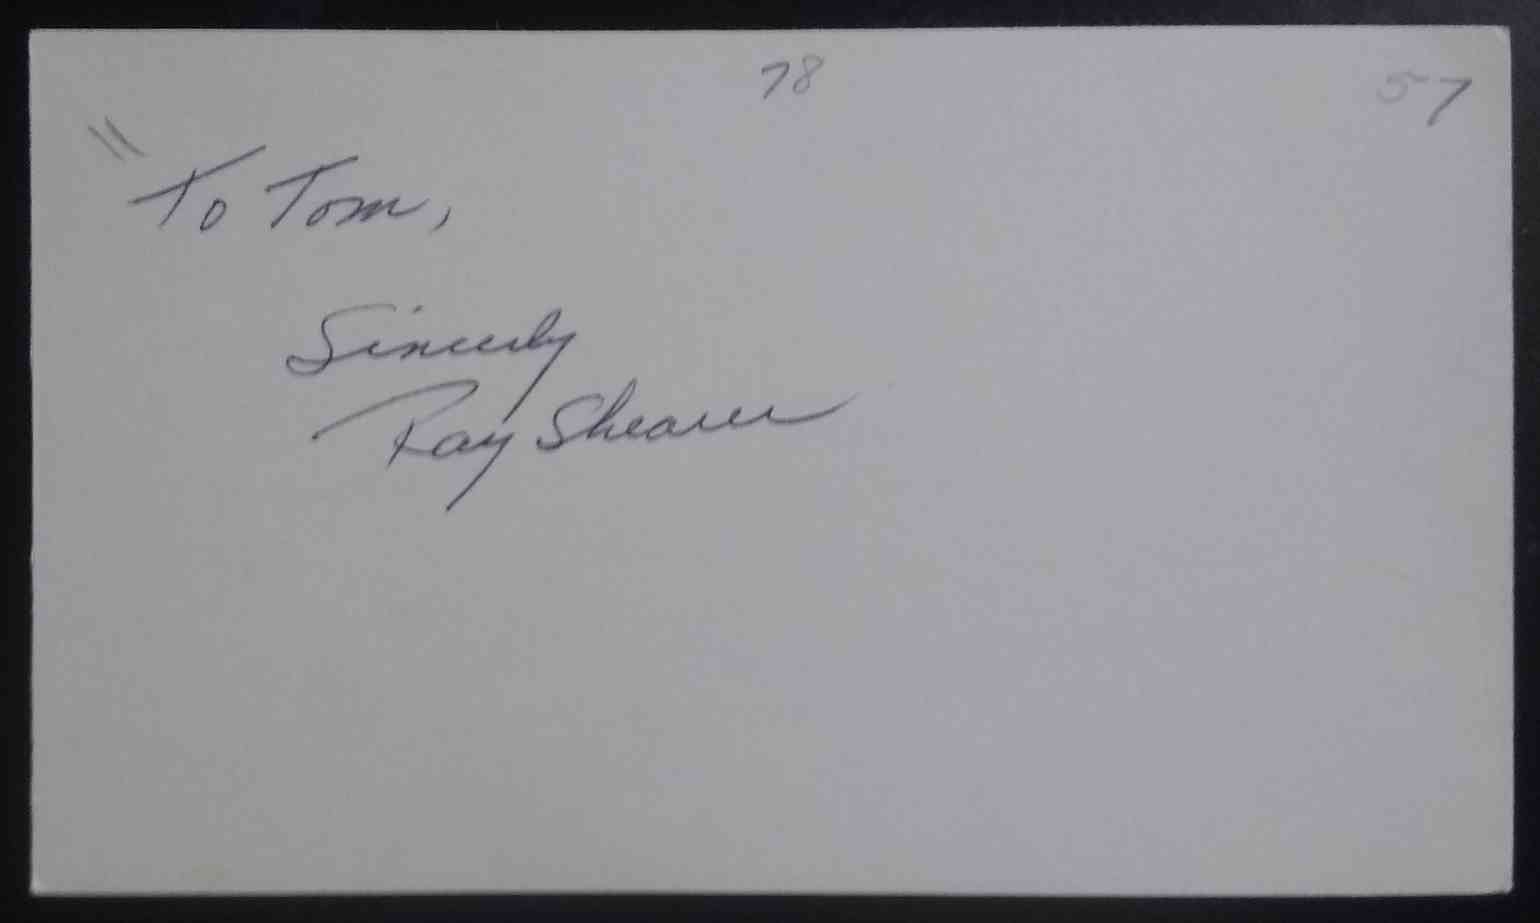 1957 3X5 Ray Shearer card front image